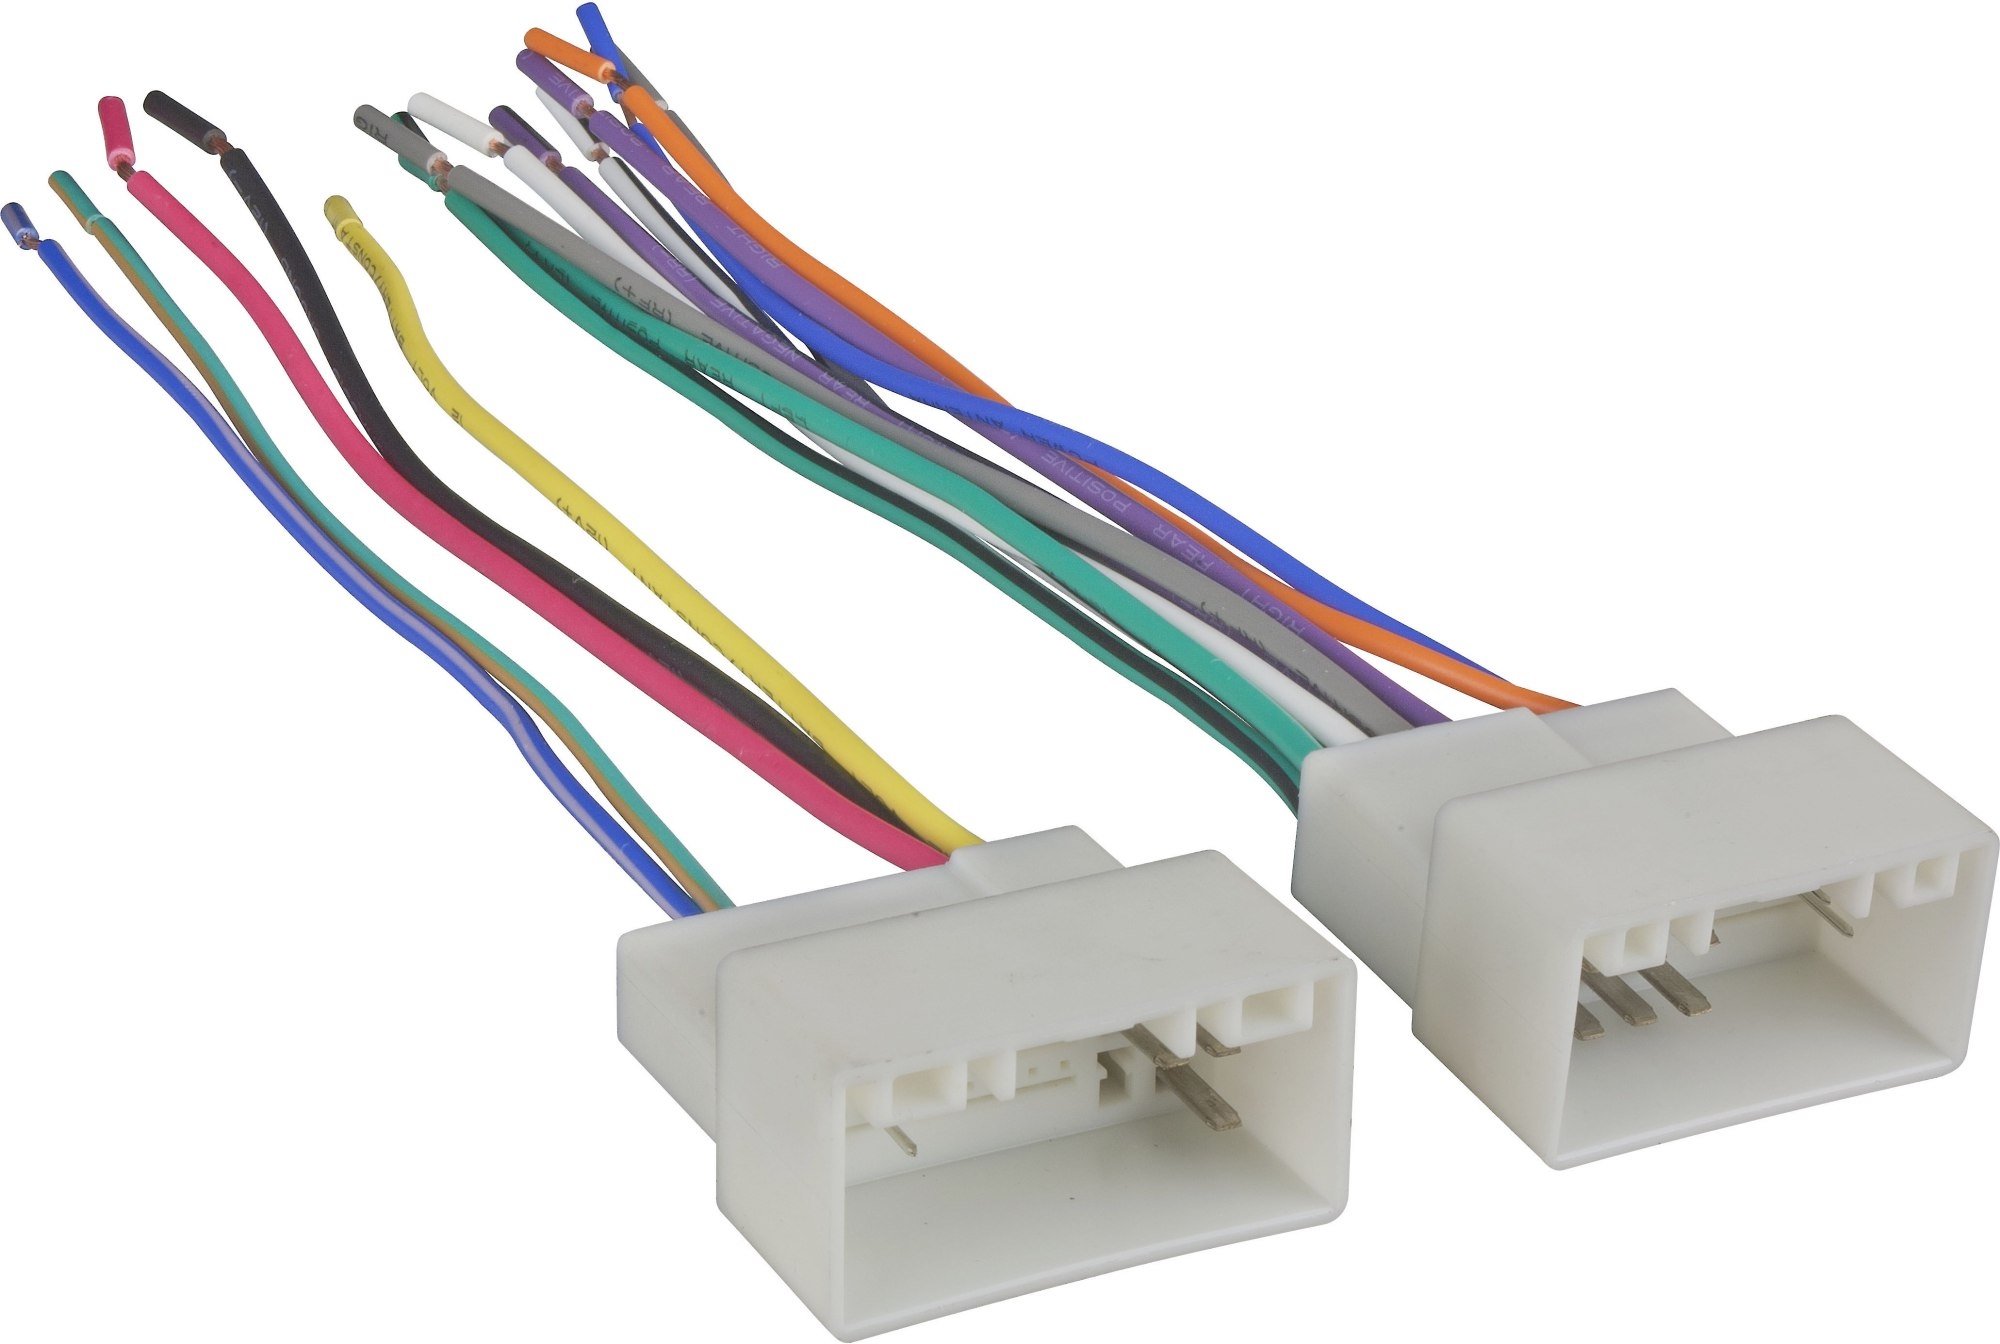 hight resolution of metra 70 7304 receiver wiring harness connect a new car stereo in select 2010 up hyundai and kia vehicles at crutchfield com